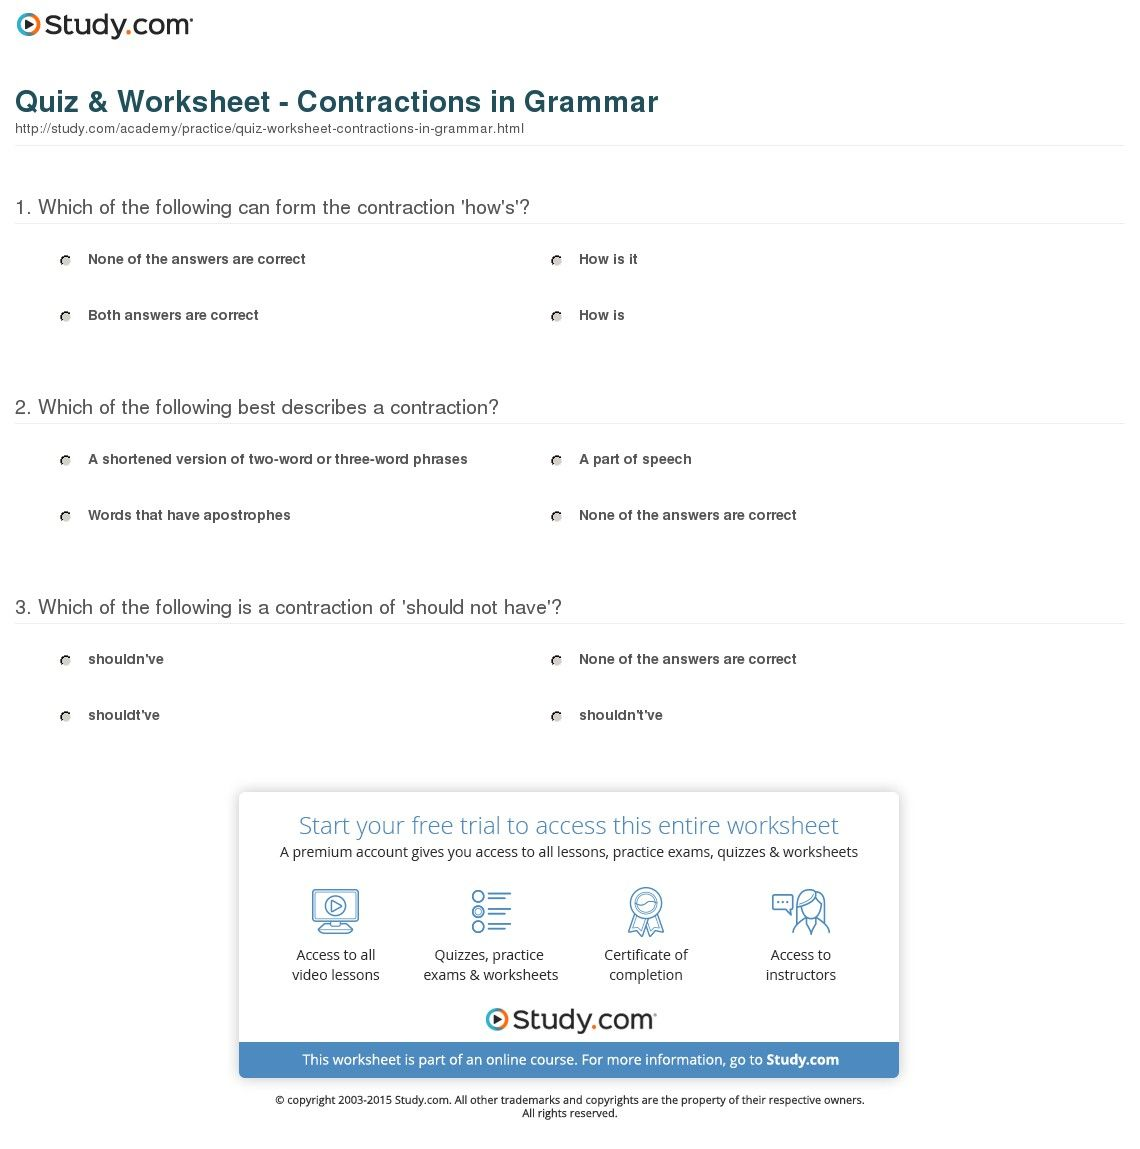 34 Innovative Contractions Worksheet Design Ideas